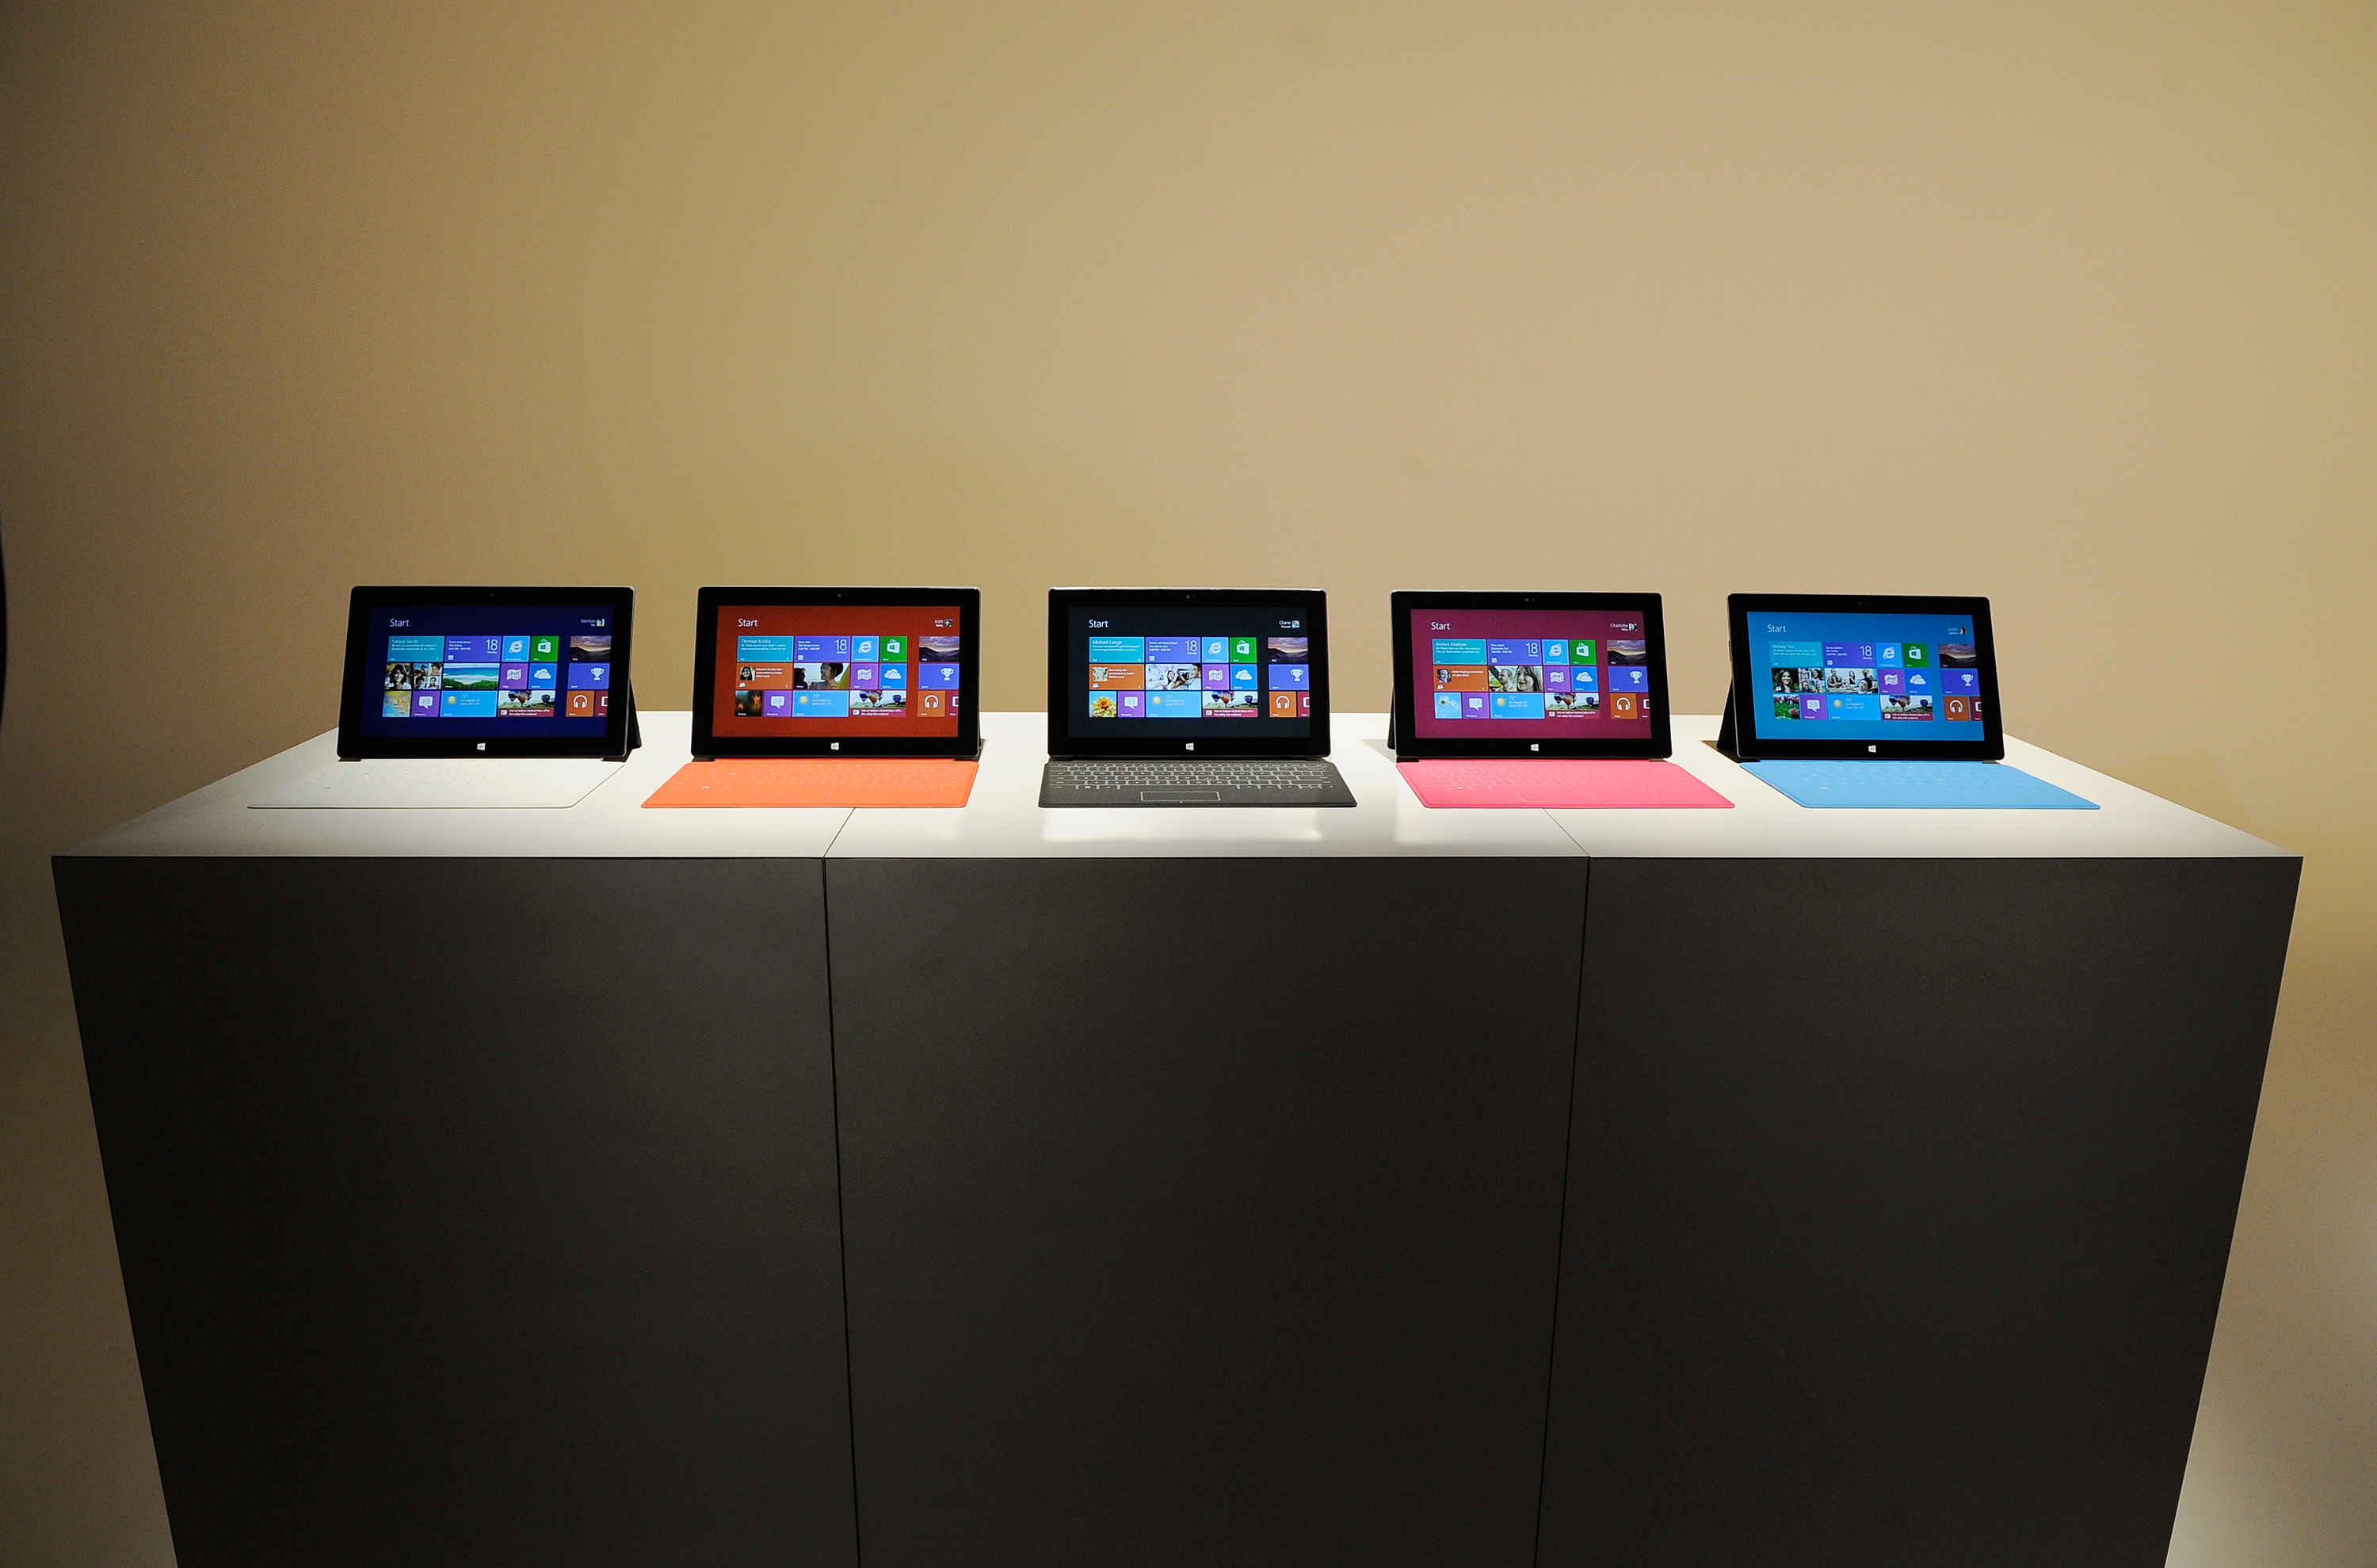 Microsoft pushes Surface banner ads suggesting preorders may open soon